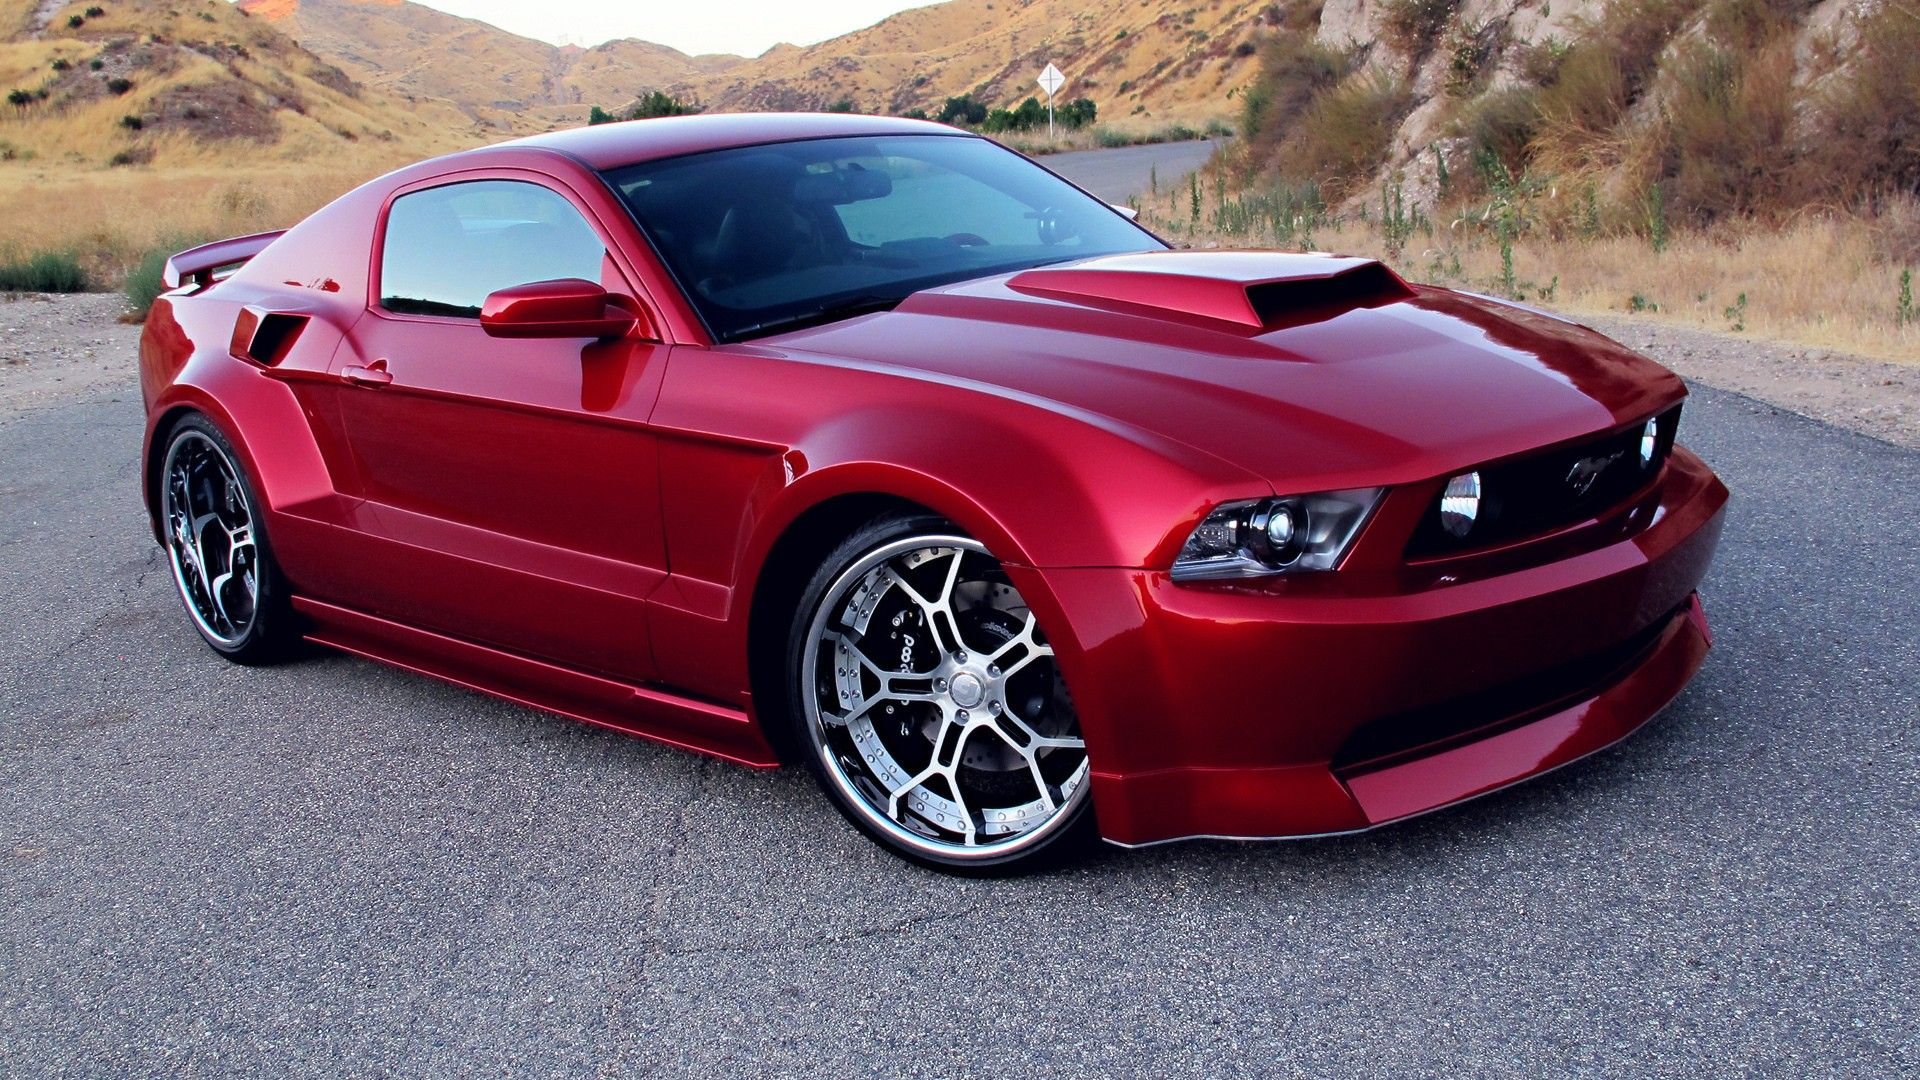 Red tuning ford mustang wheels ford mustang gt 1920x1080 wallpaper 2012 mustang gt red